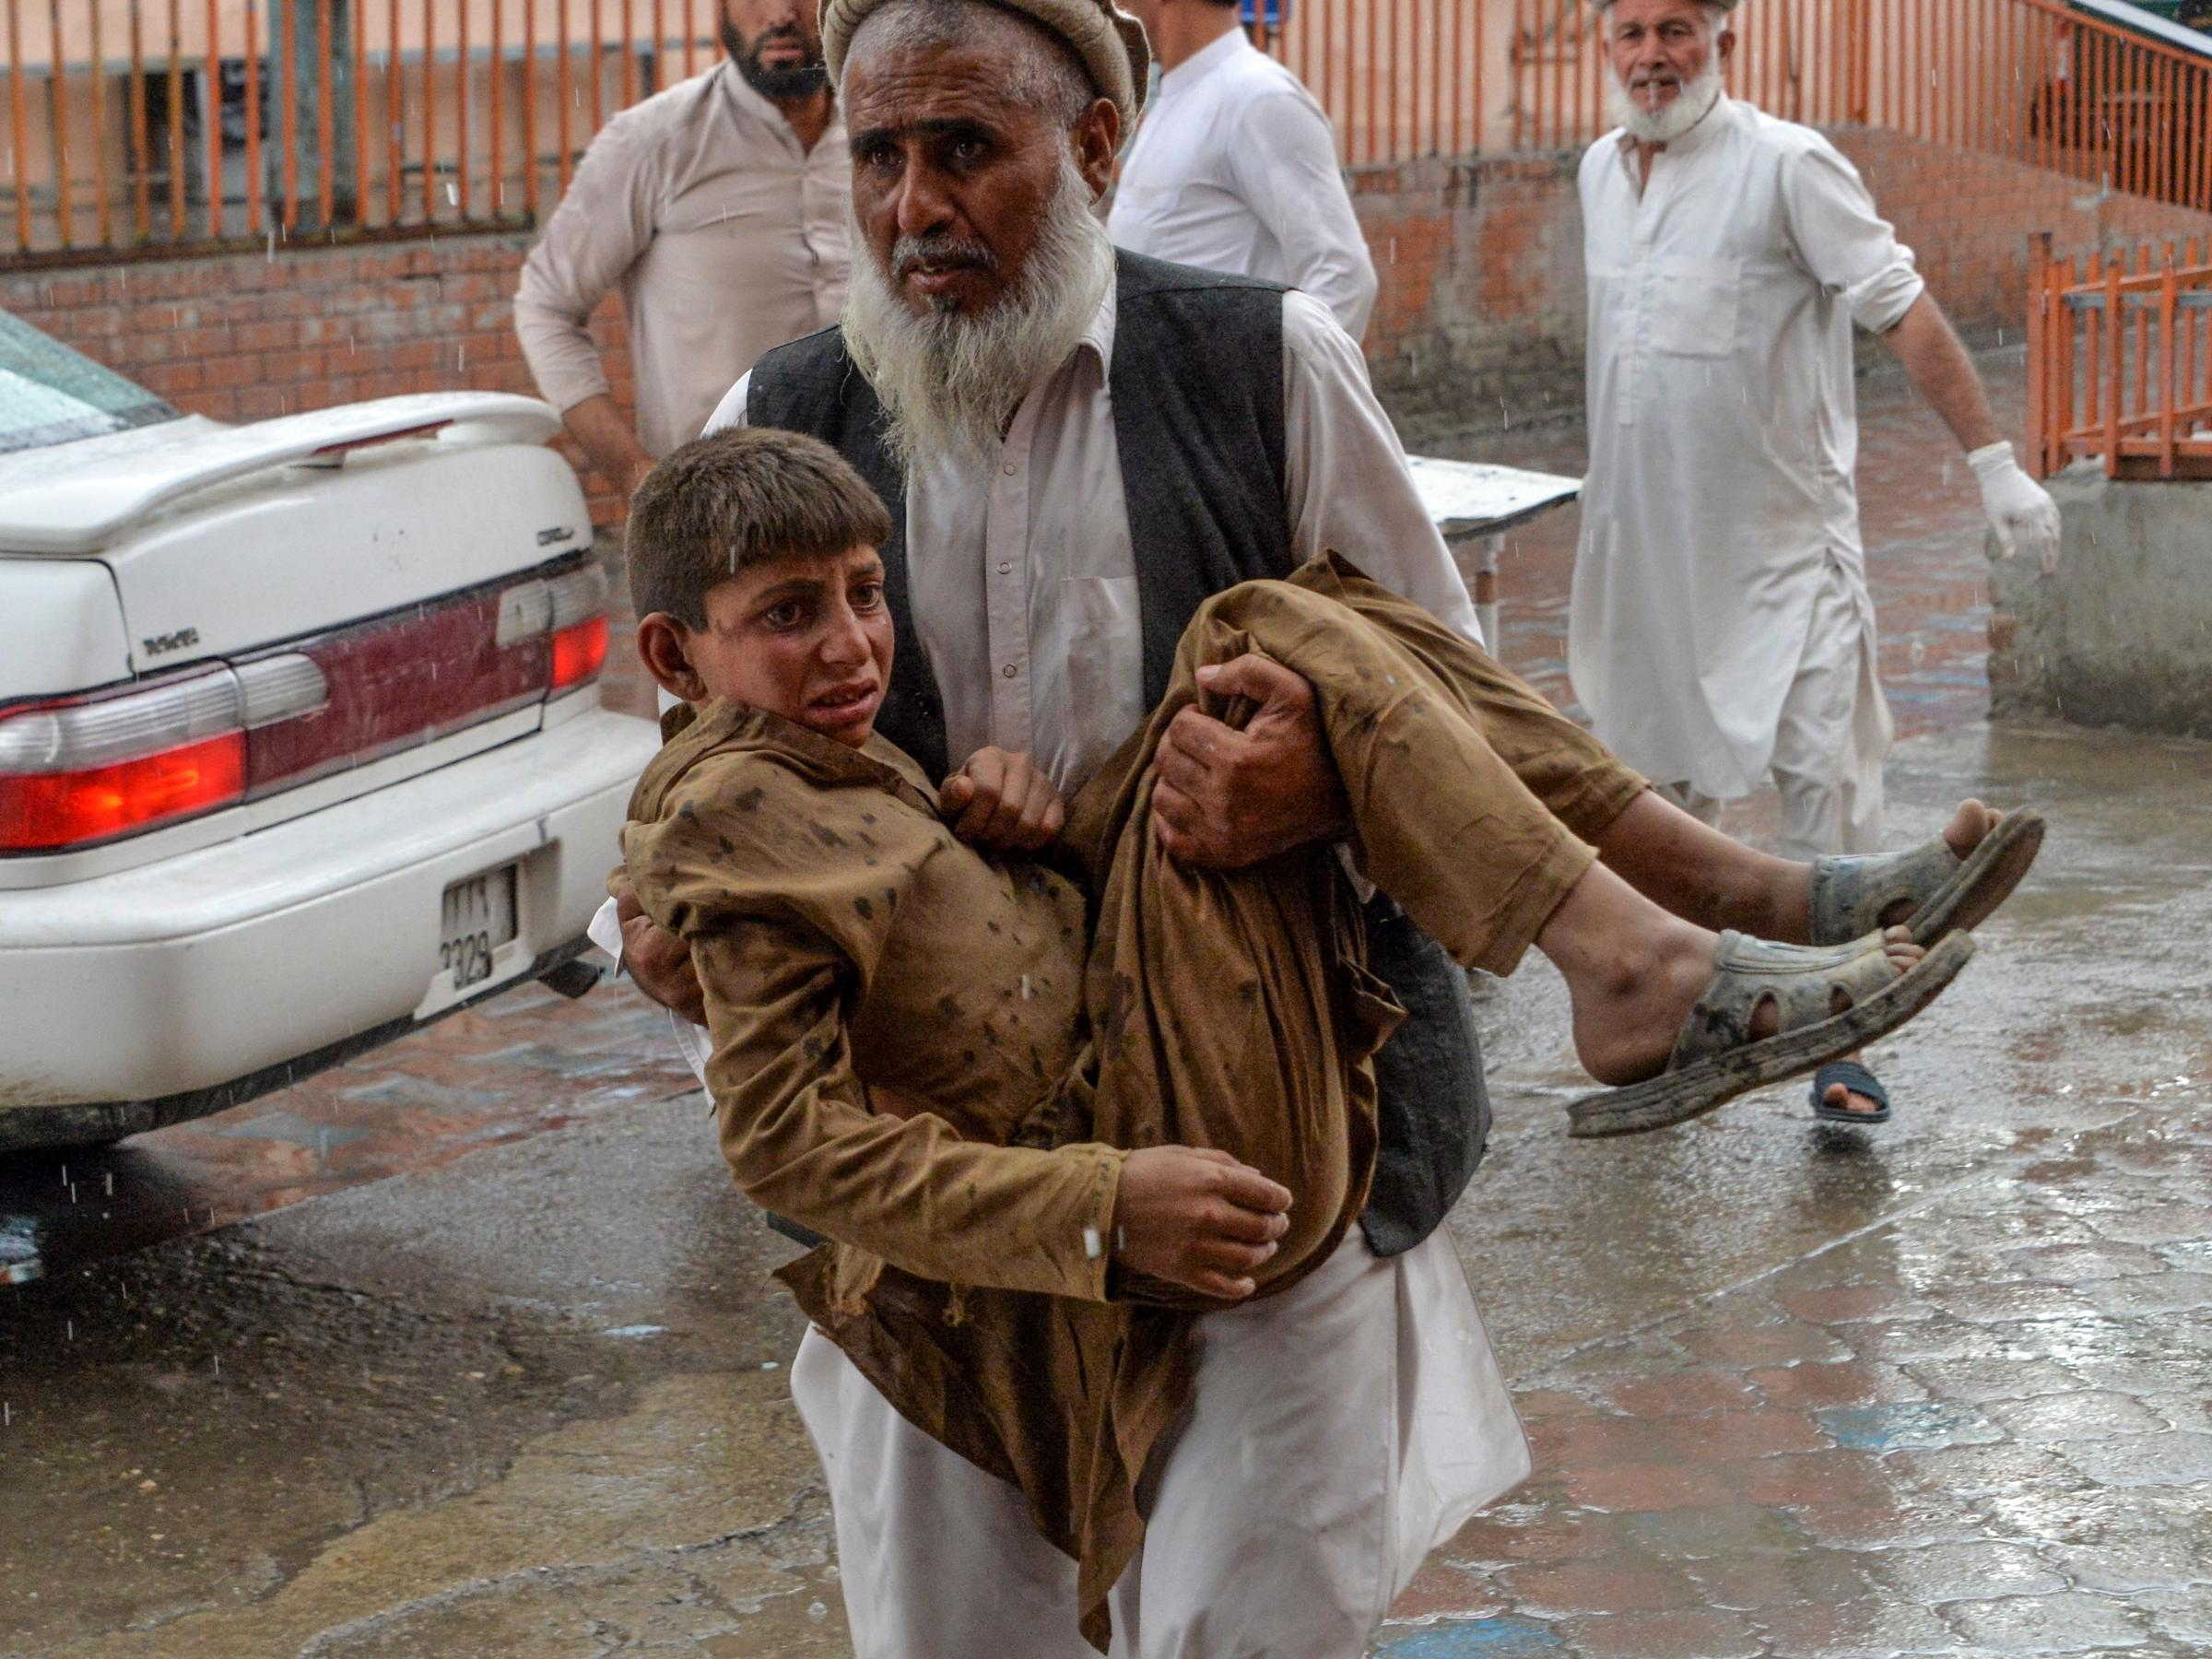 Explosions At Mosque Kill At Least 62 People In Afghanistan